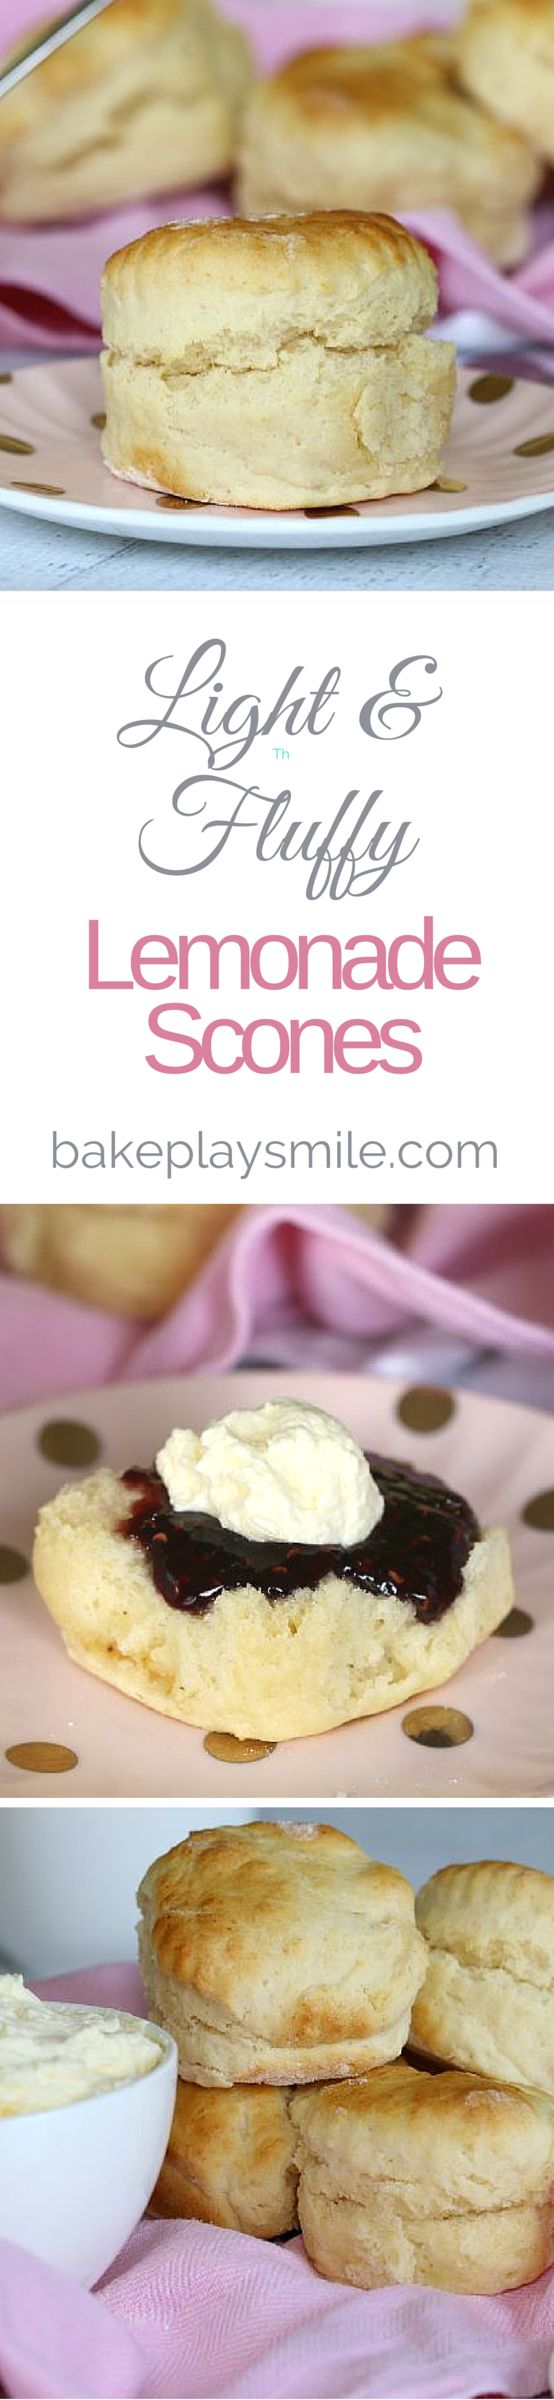 Fail Proof Lemonade Scones.